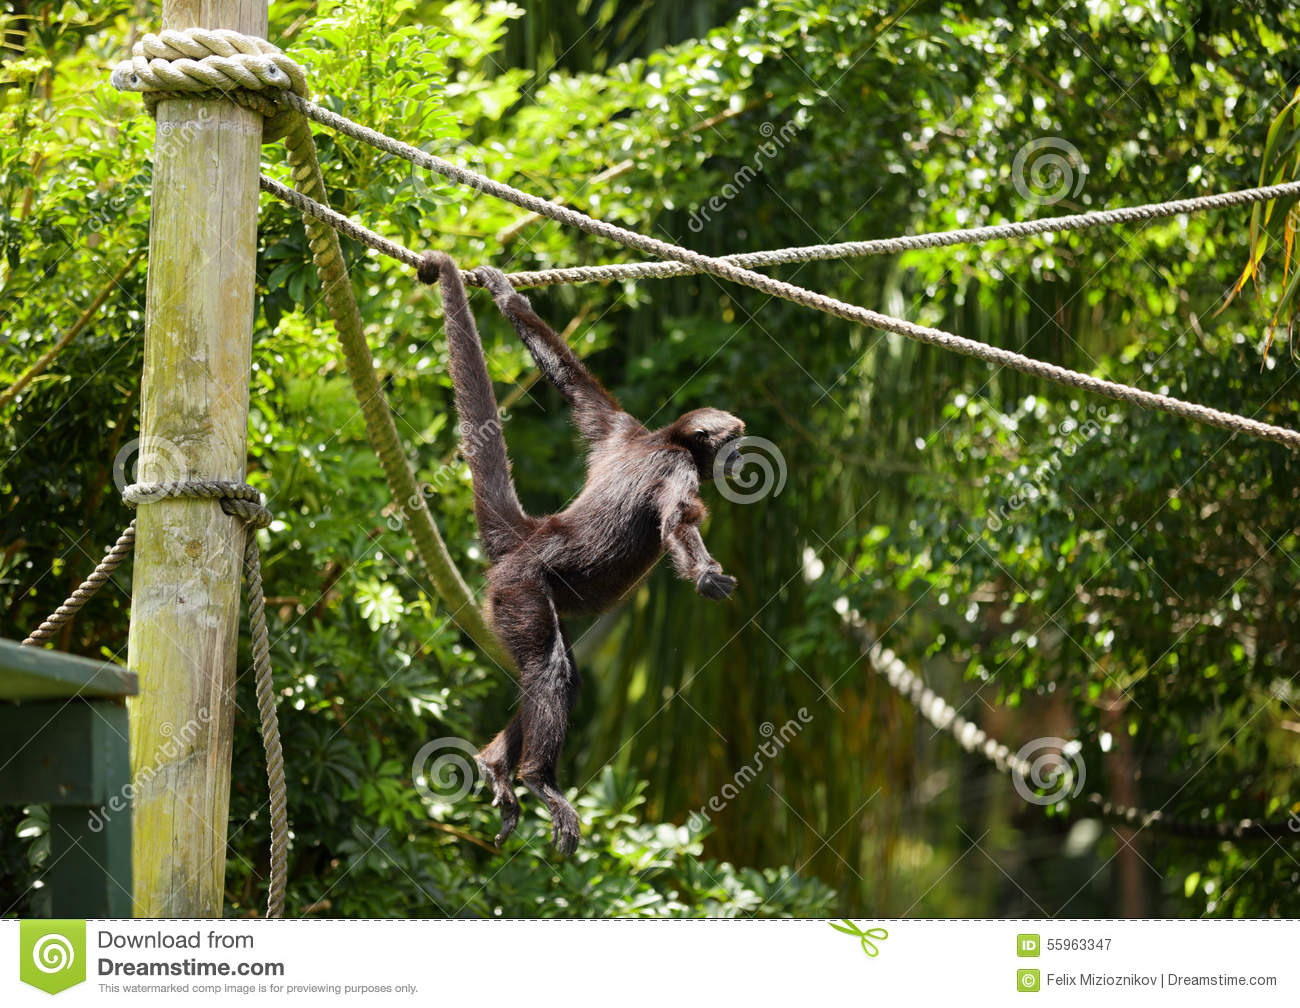 Gallery For > Spider Monkeys Playing